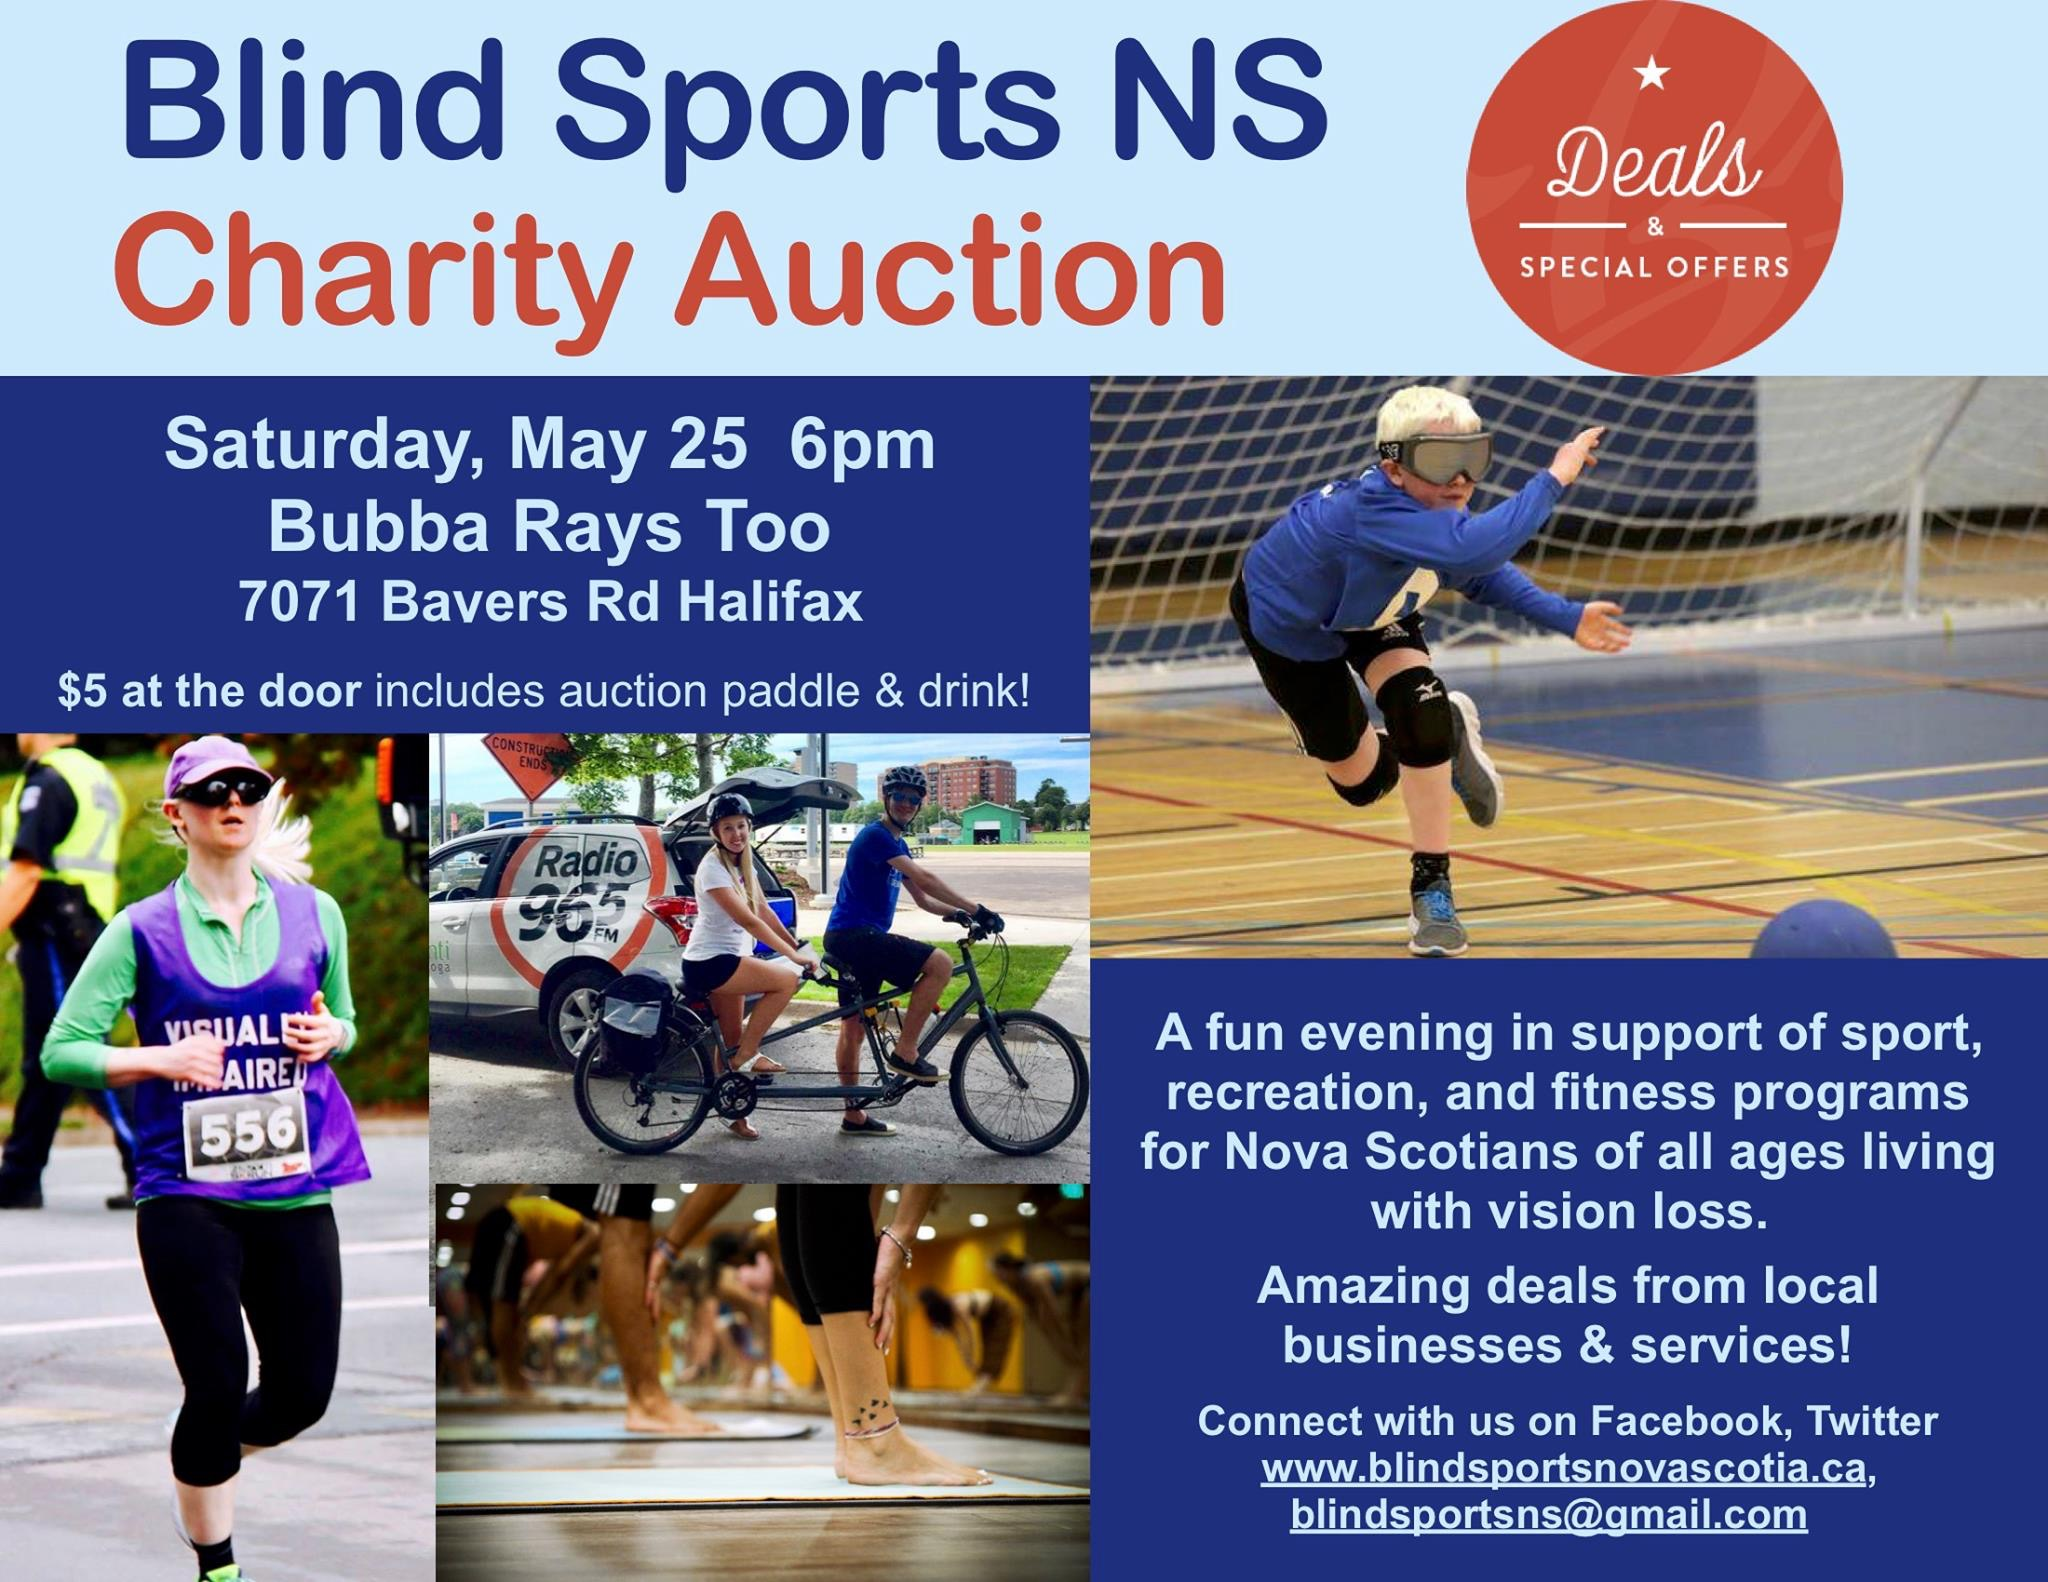 "Pictured on the poster are: ""Deals & special offers"". A blonde woman running in a vest that reads ""visually impaired"", a pair on a tandem bike outdoors, a young goal ball player in eyeshades, and a group of ankles & feet in a yoga class.  Blind Sports NS Charity Auction Saturday, May 25 6pm Bubba Rays Too 7071 Bayers Rd Halifax $5 at the door includes auction paddle & drink! A fun evening in support of sport, recreation, and fitness programs for Nova Scotians of all ages living with vision loss. Amazing deals from local businesses & services! Connect with us on Facebook, Twitter www.blindsportsnovascotia.ca, blindsportsns@gmail.com"